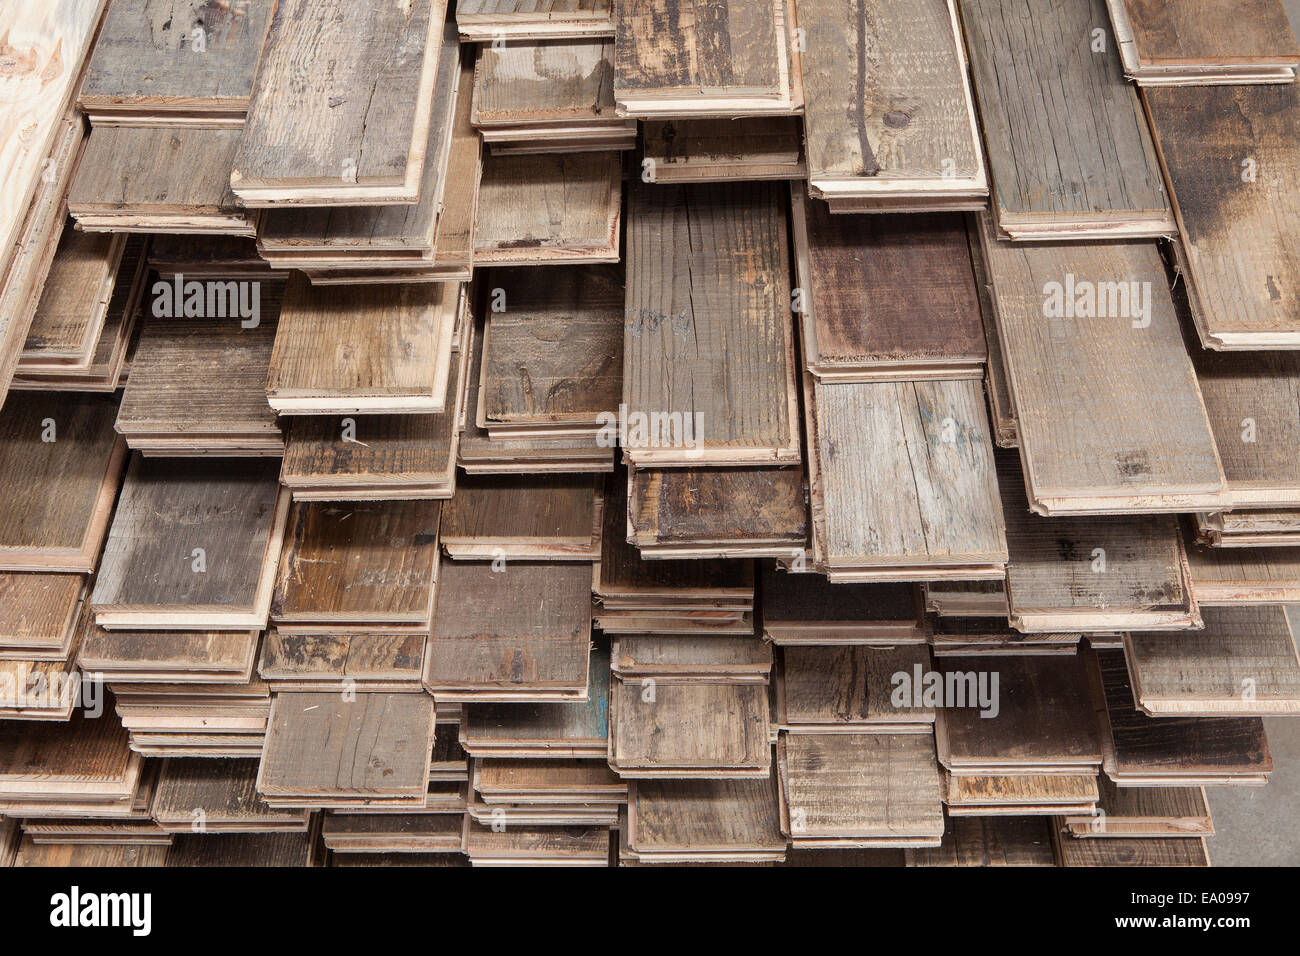 Stacks of treated wood flooring in factory, Jiangsu, China - Stock Image